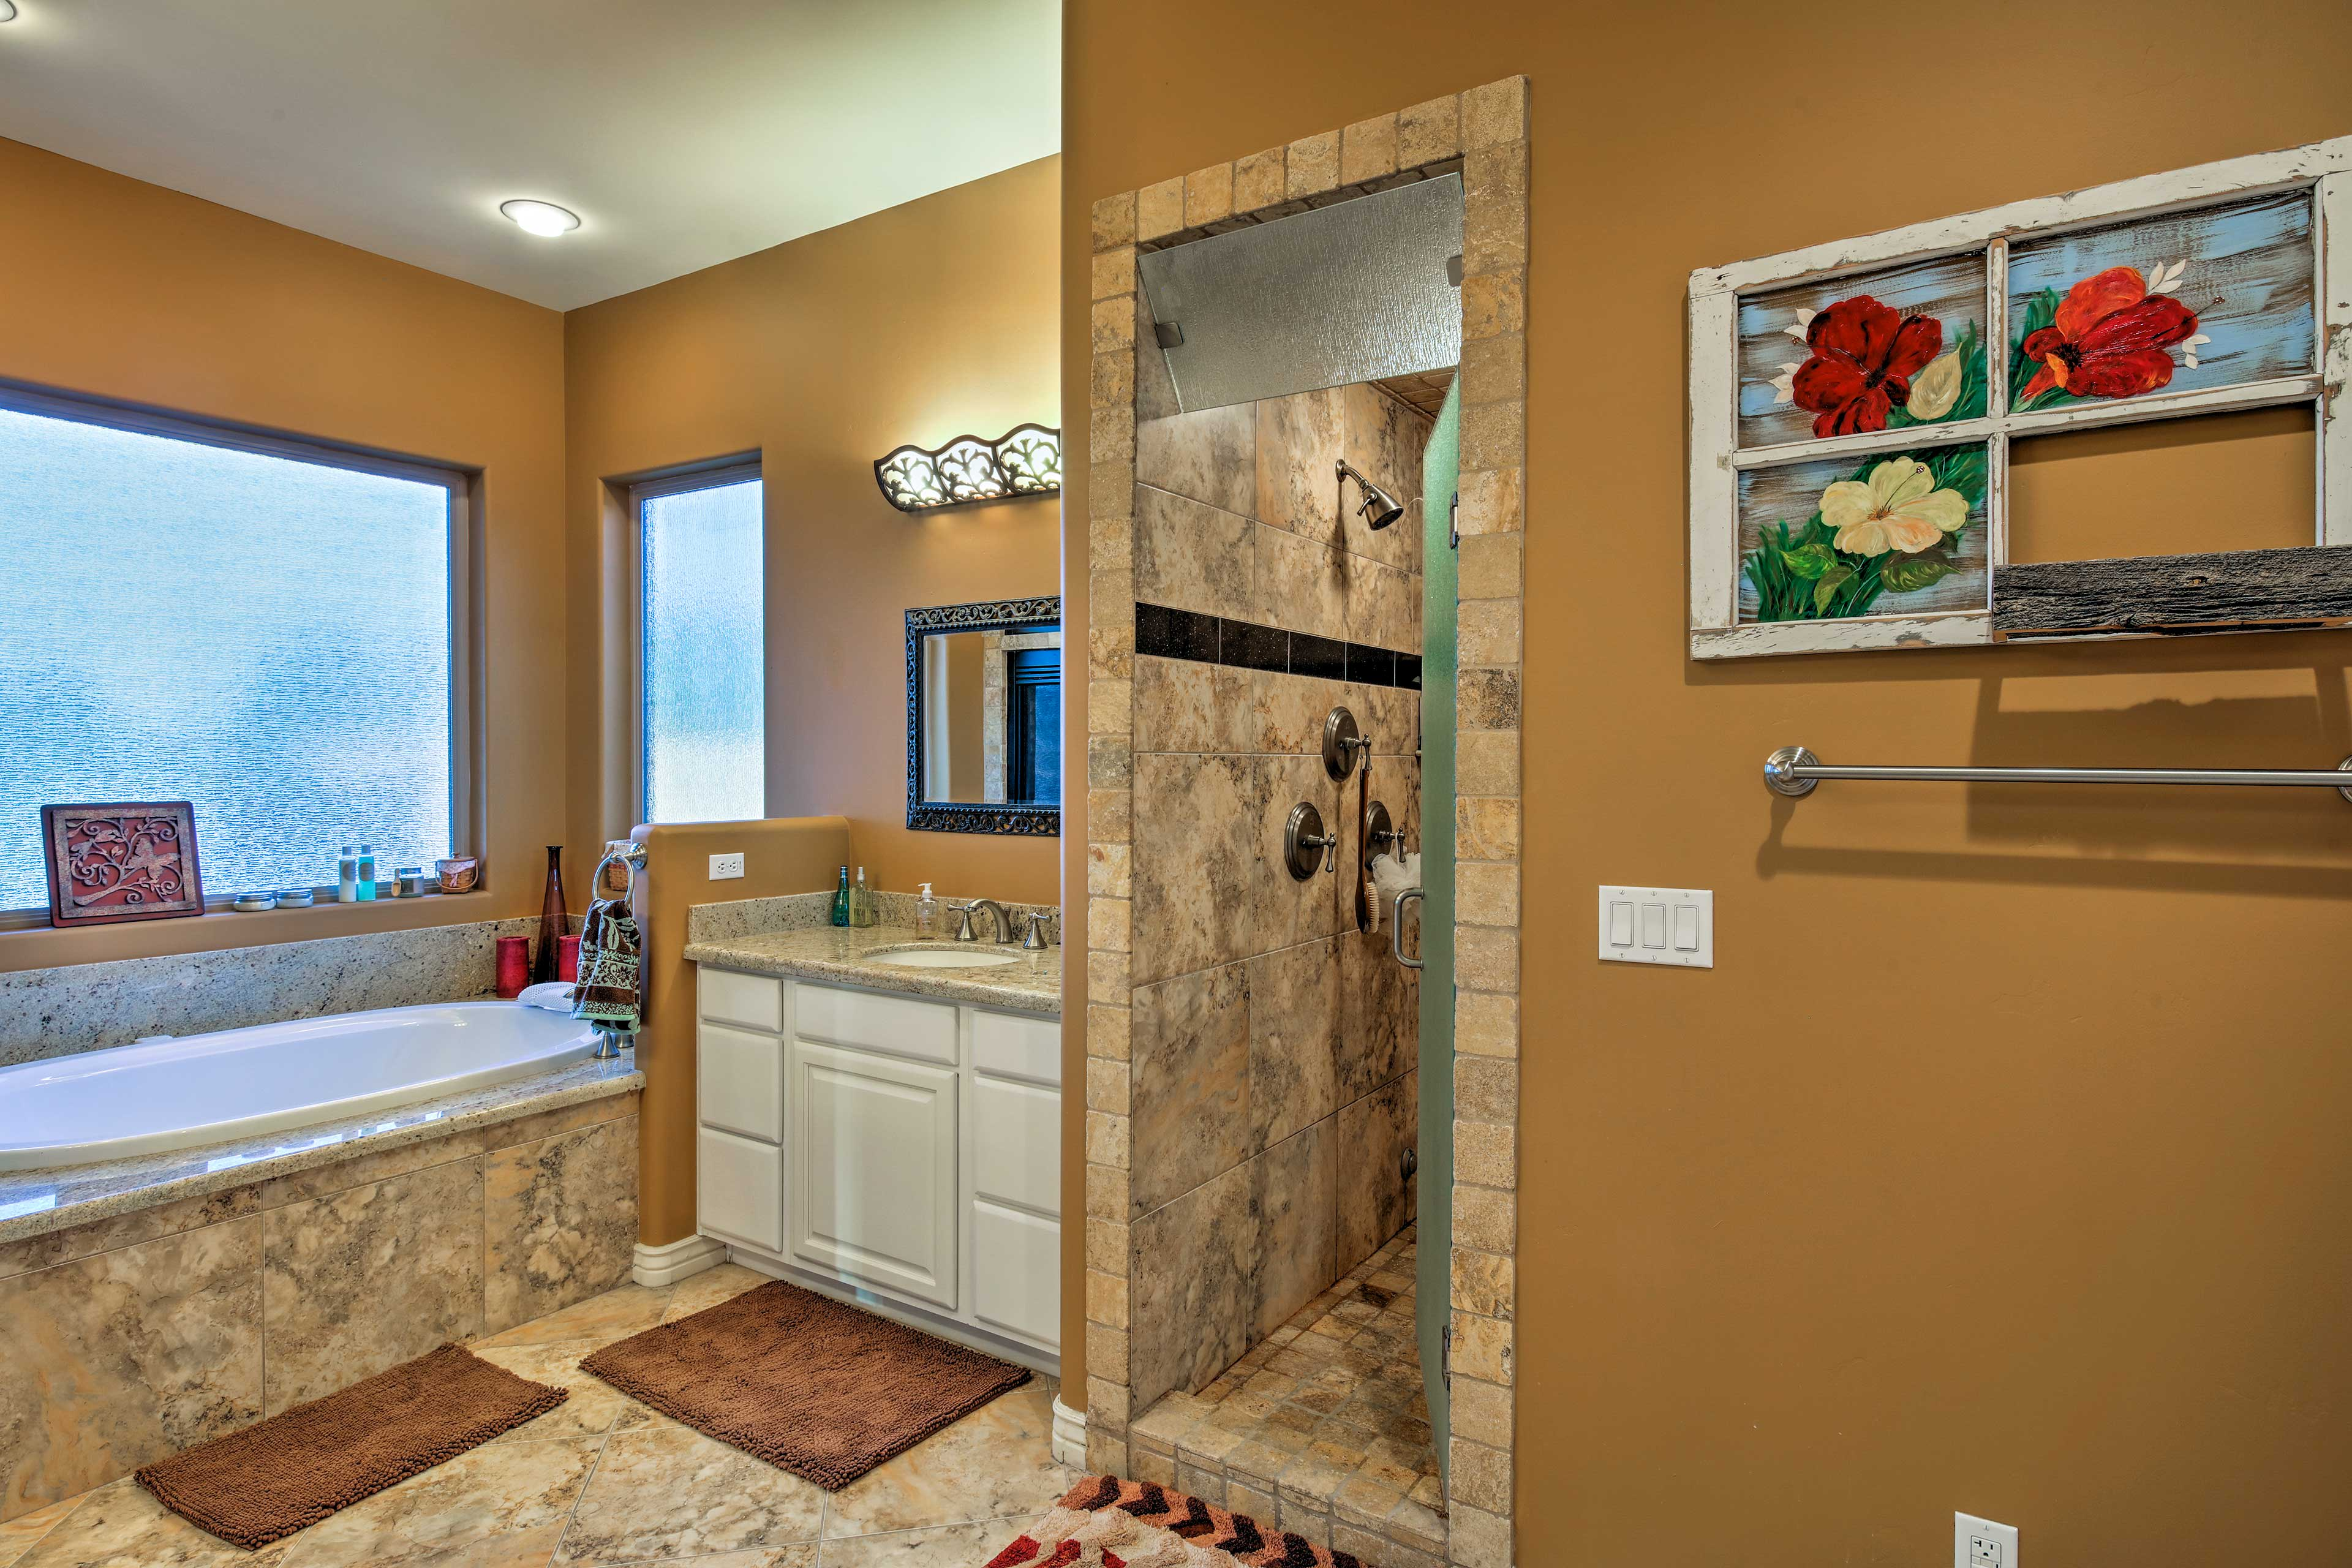 Treat yourself to a bath in the sunken jetted tub furnishing this bathroom.